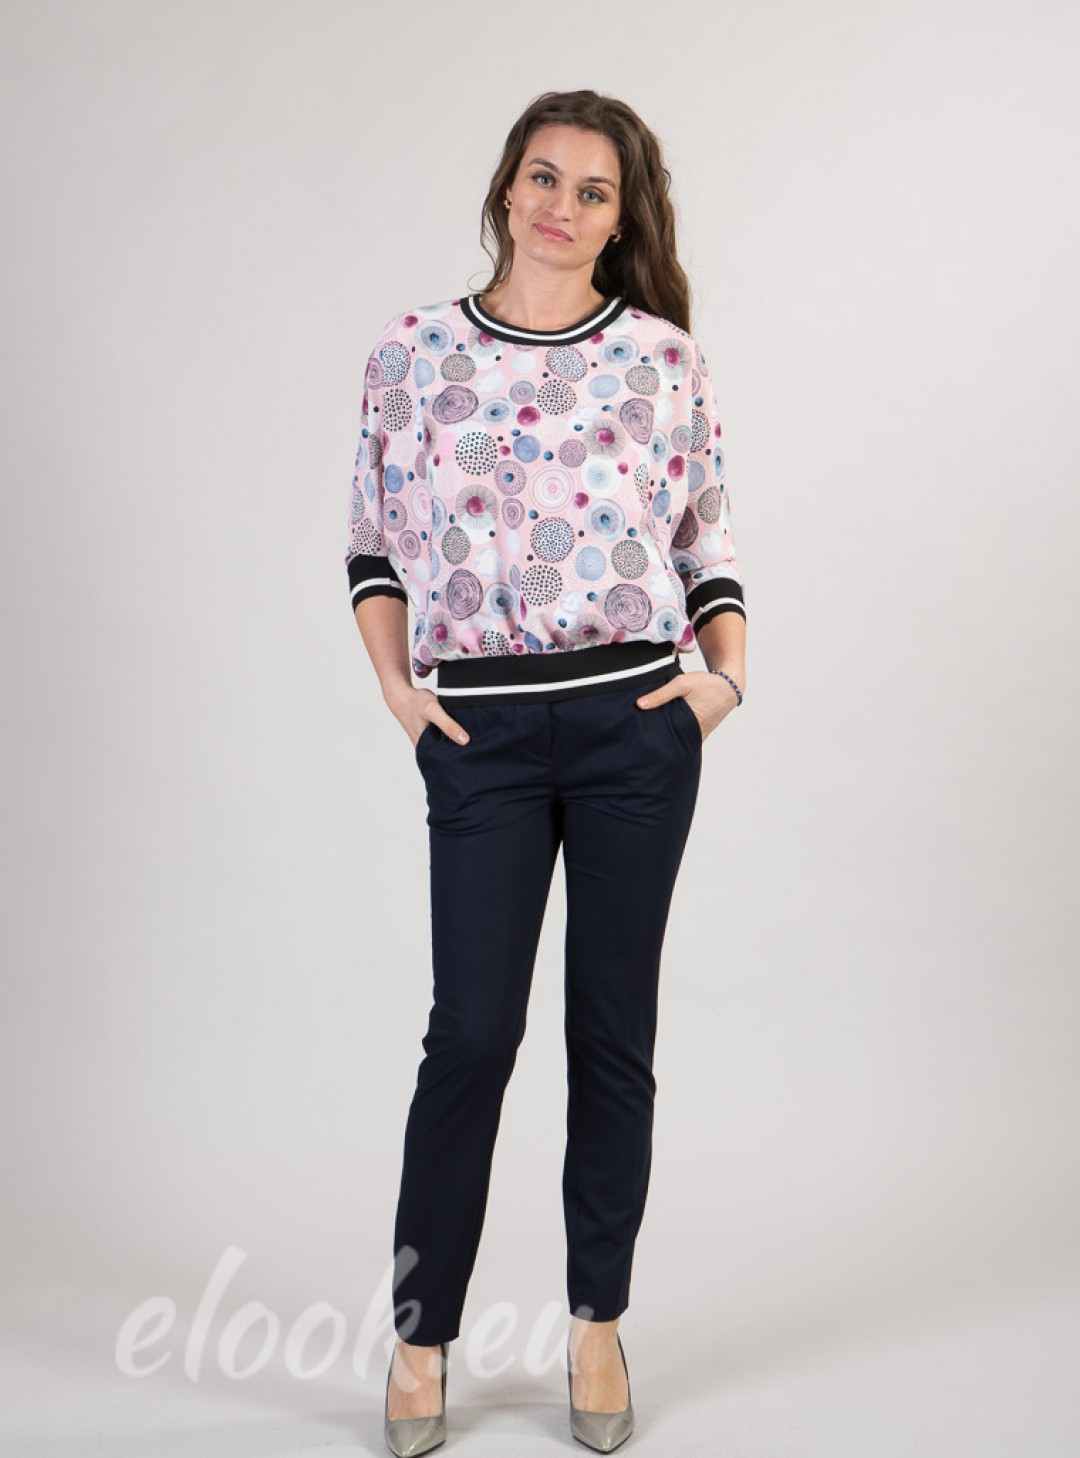 Blouse with 3/4 sleeves sports accent and print on multicolored circles